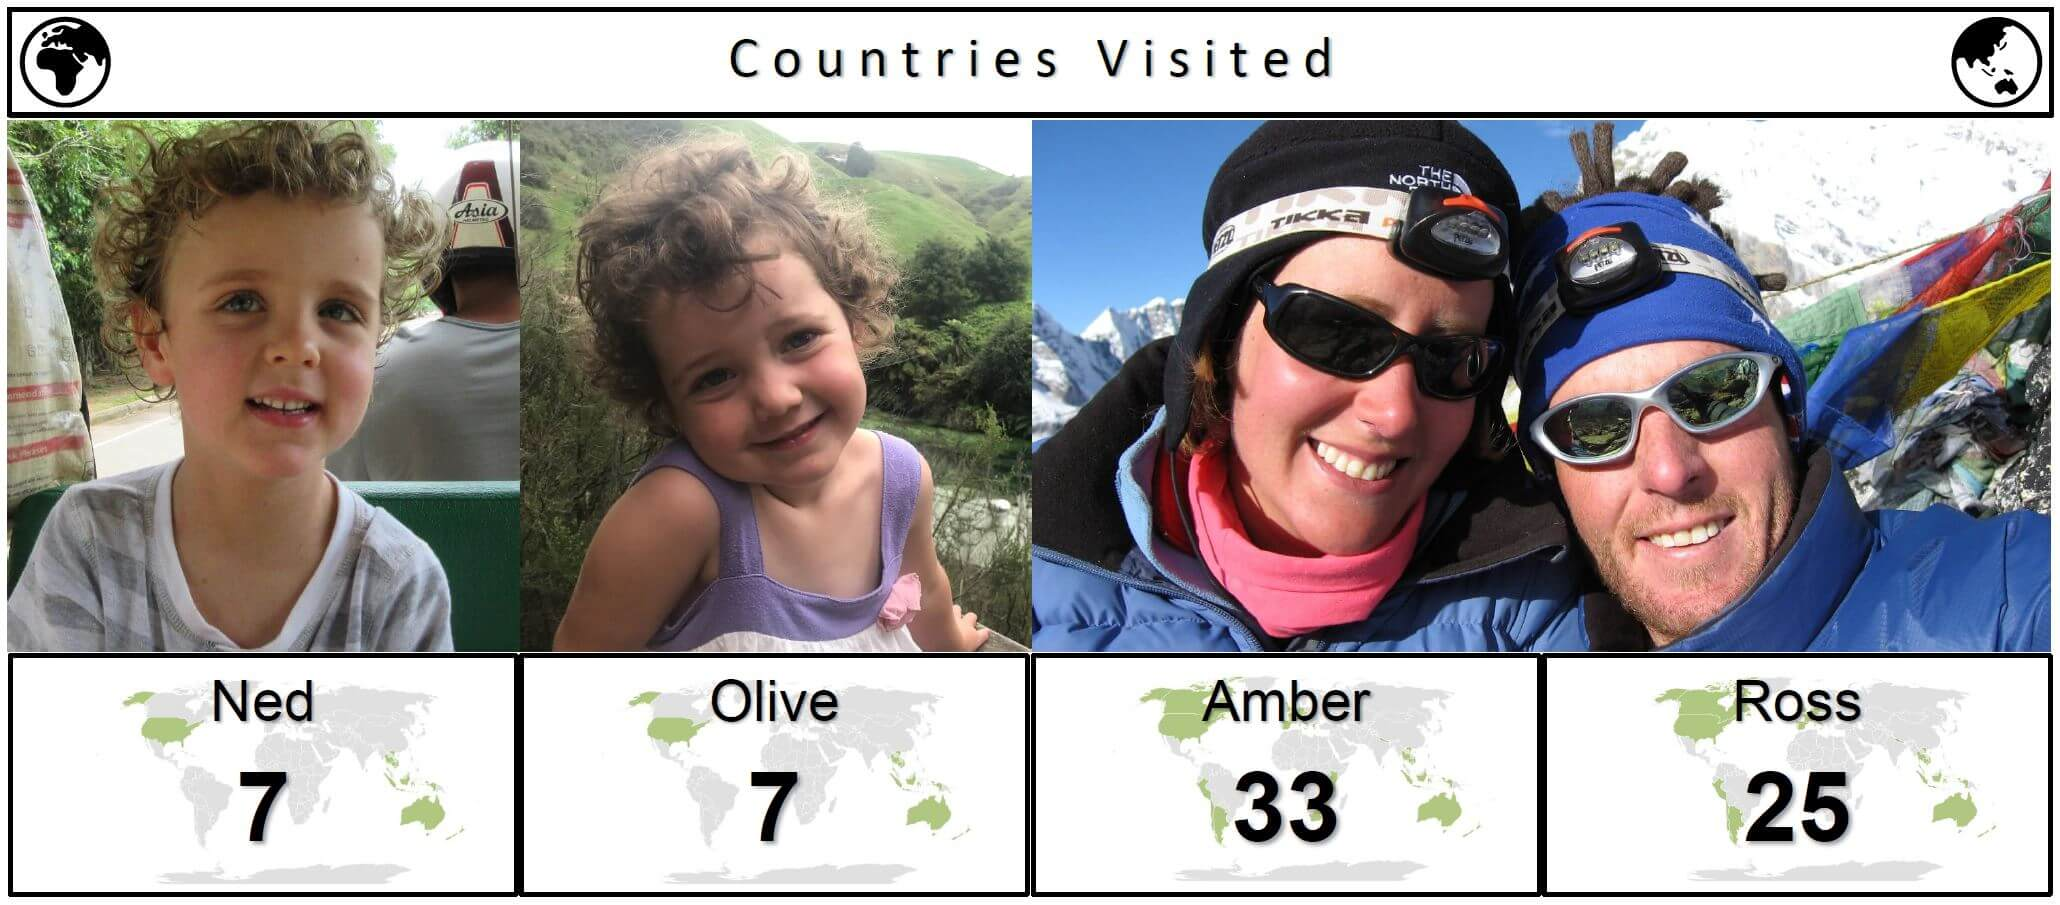 Hill Tribe Travels and the number of countries they have visited